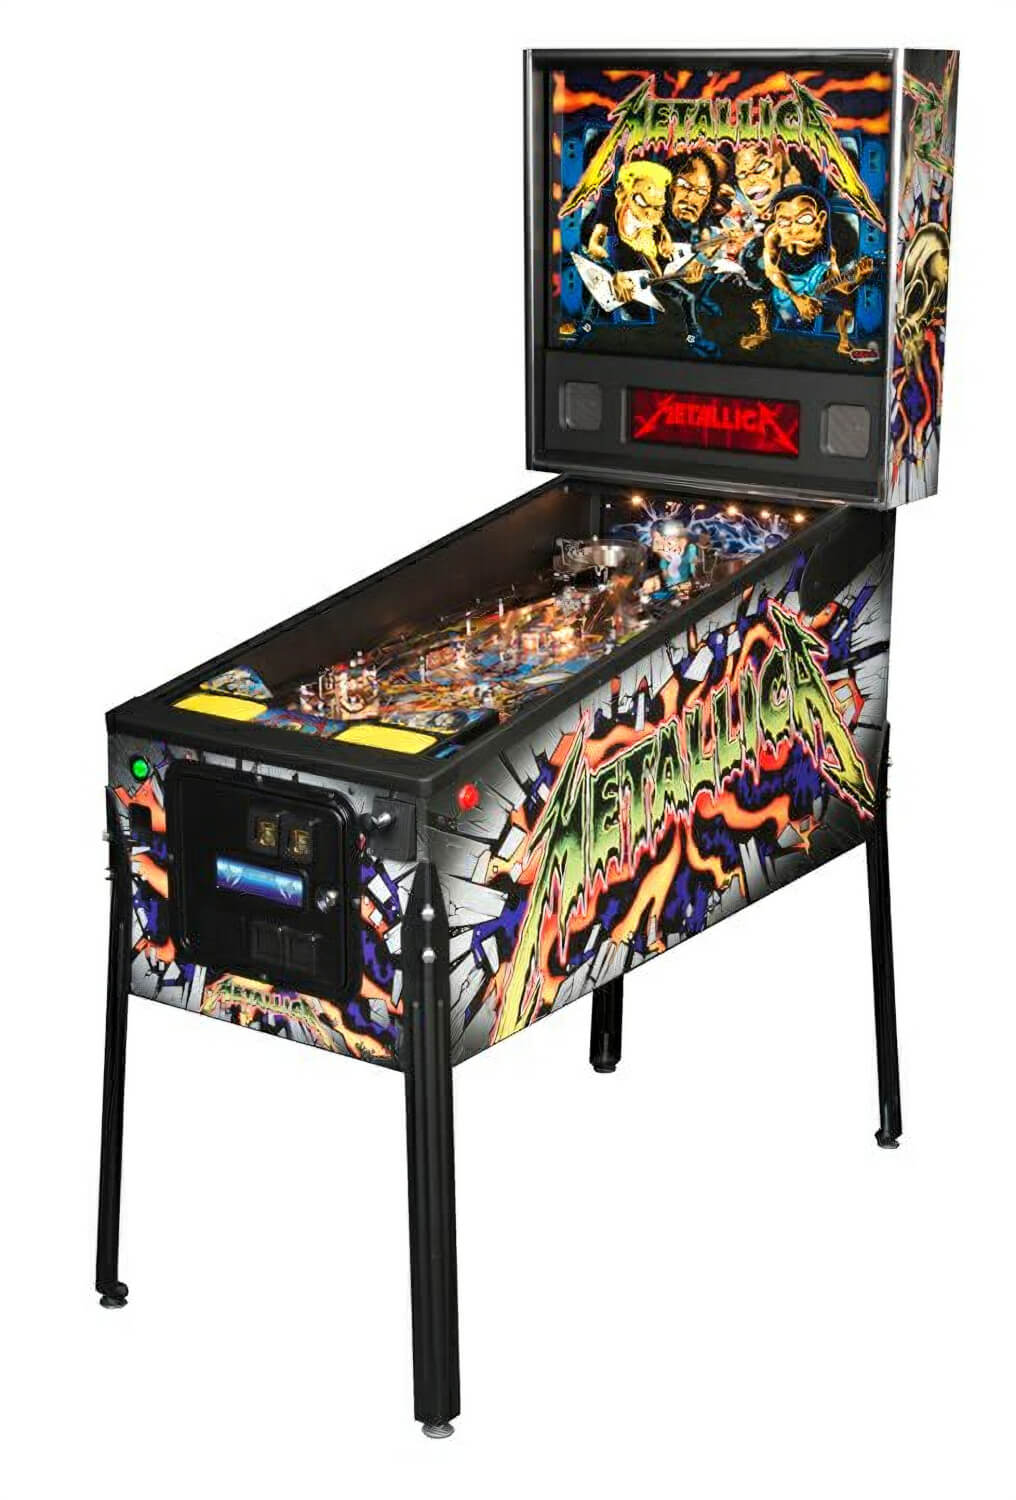 Stern Metallica Pro Pinball Machine Liberty Games